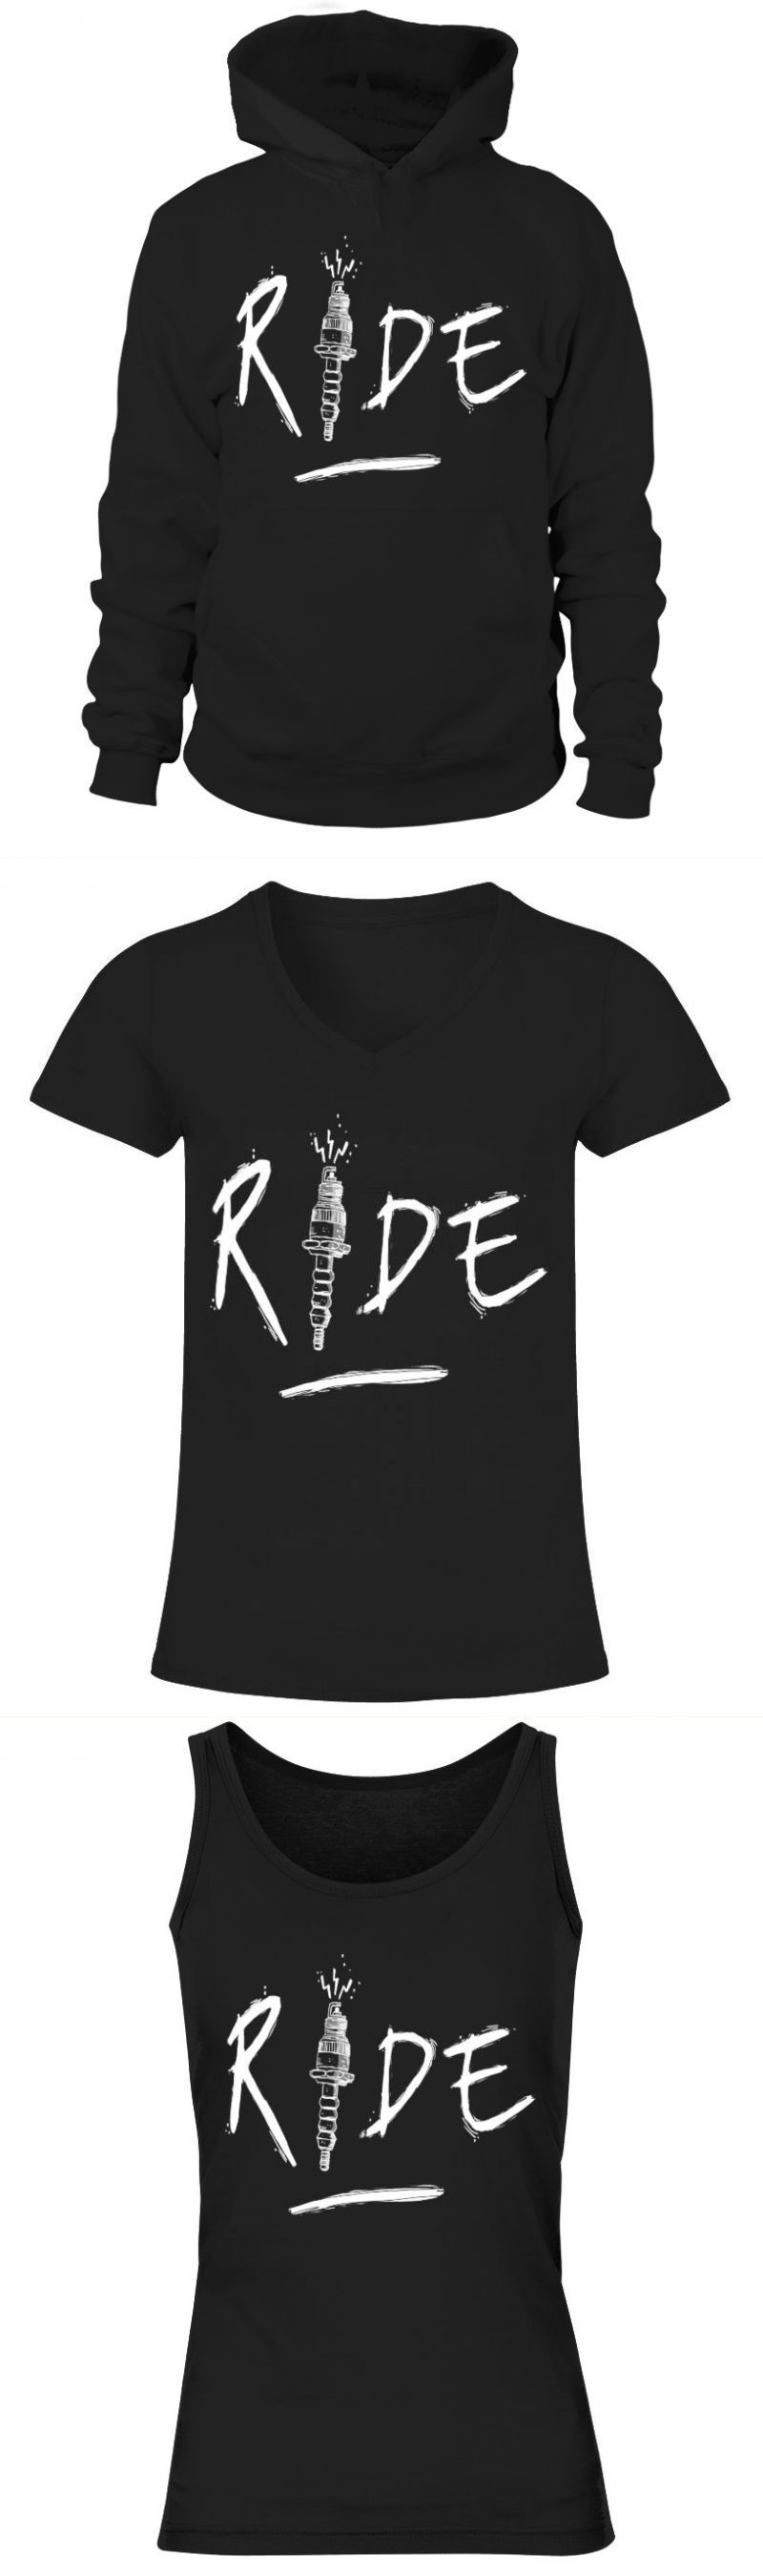 Olympic swimming t shirt ride sparkle mantra tshirt i'd